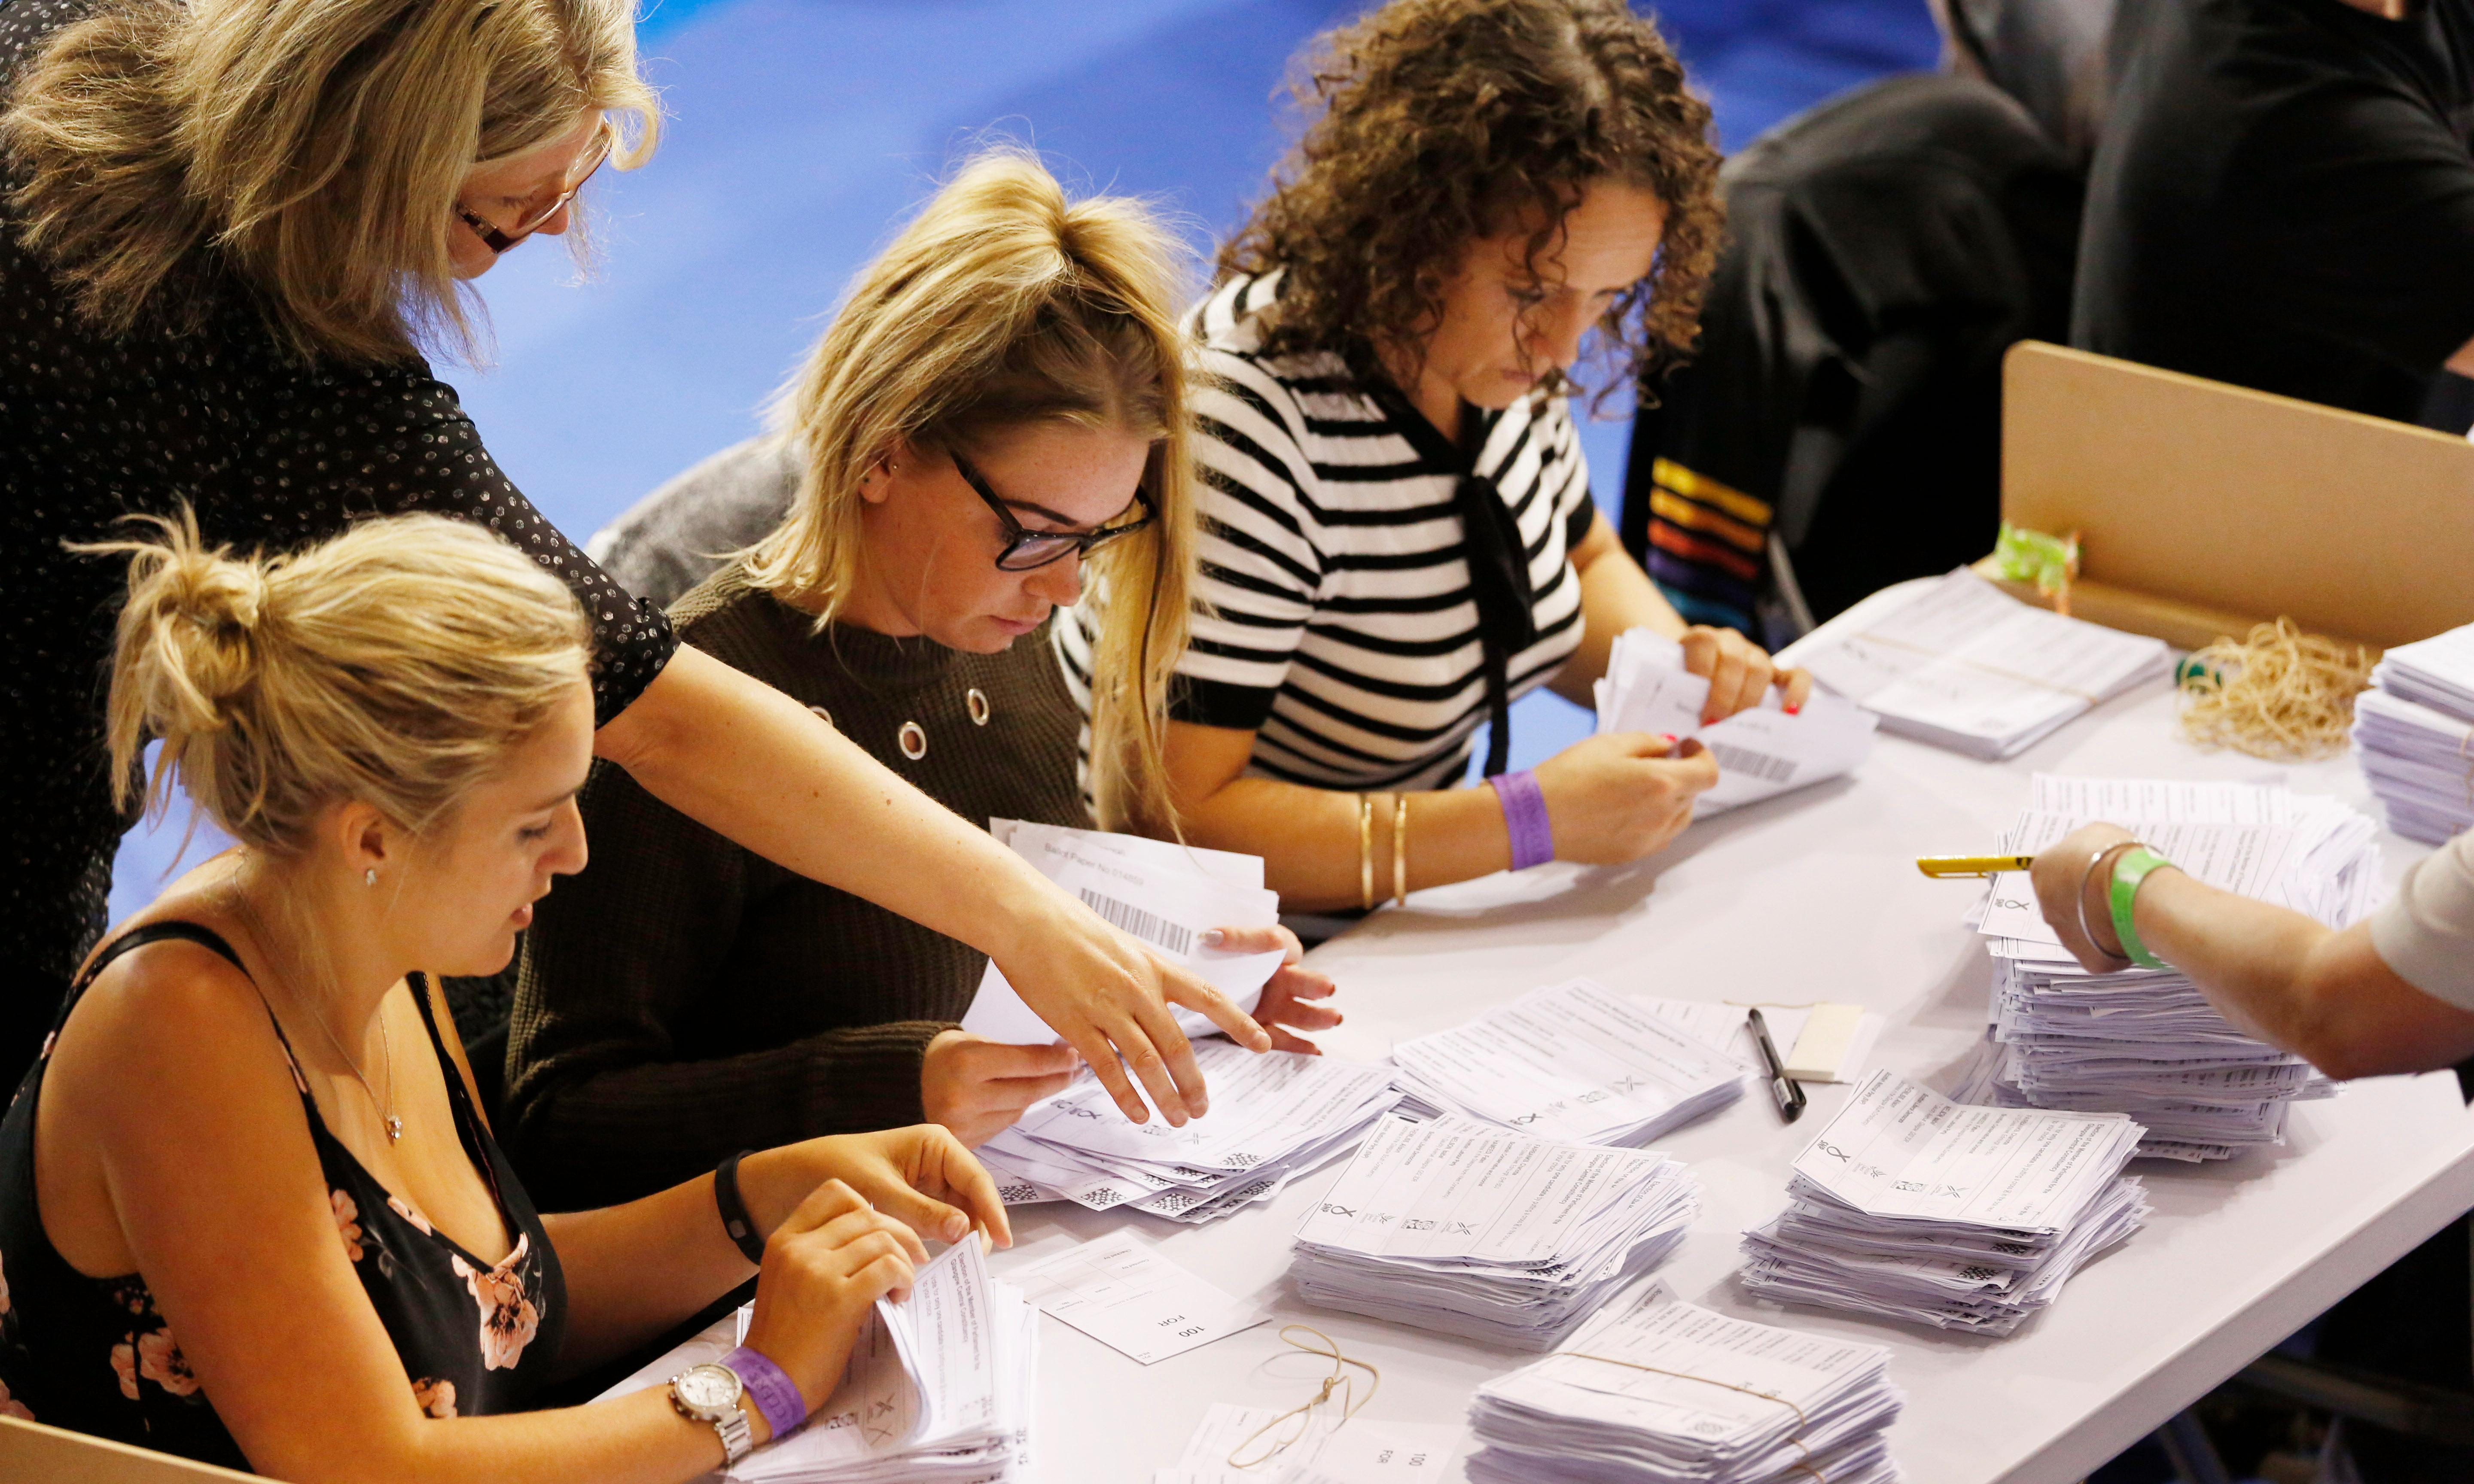 If pollsters want us to trust their results they need to lose the secrecy